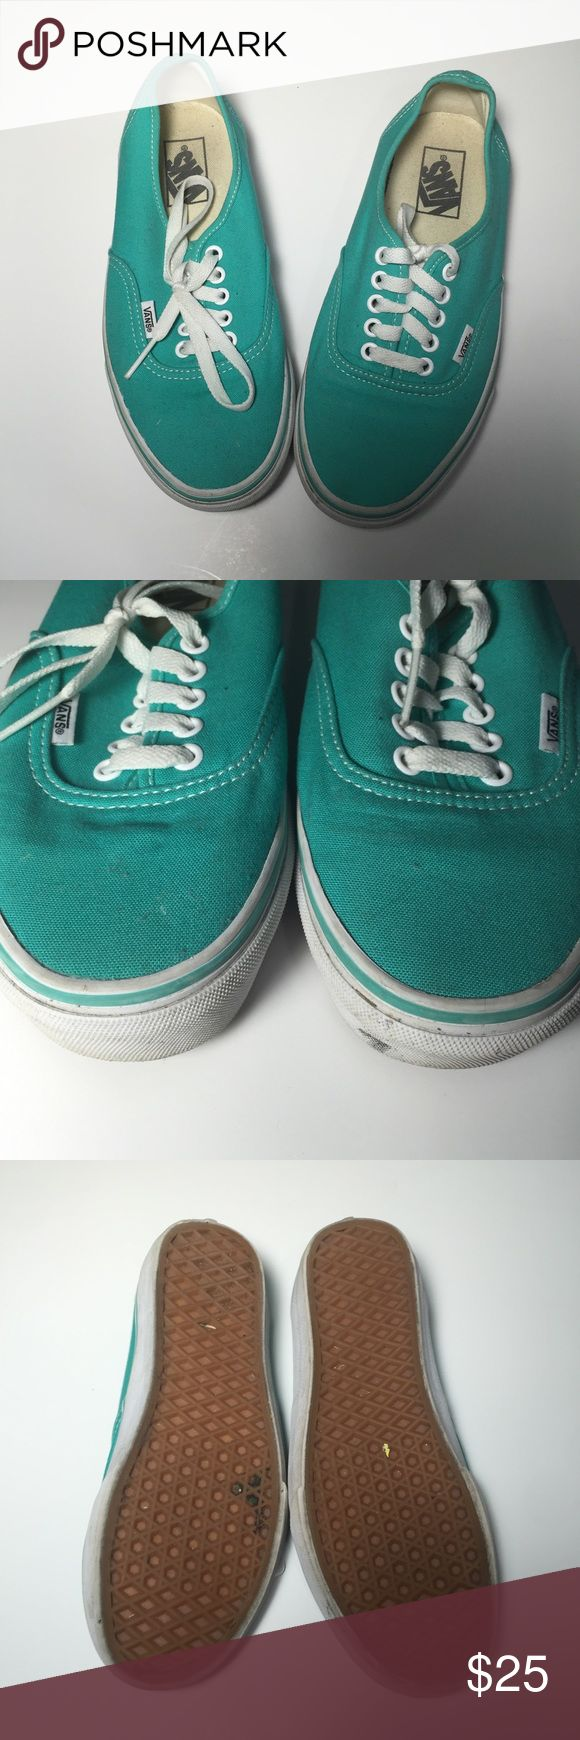 Teal vans size 8 Adorable teal vans size 8 (men's 6.5). Love these so much but I need to destashing my shoe collection. Some signs of wear but still on great condition! Vans Shoes Sneakers